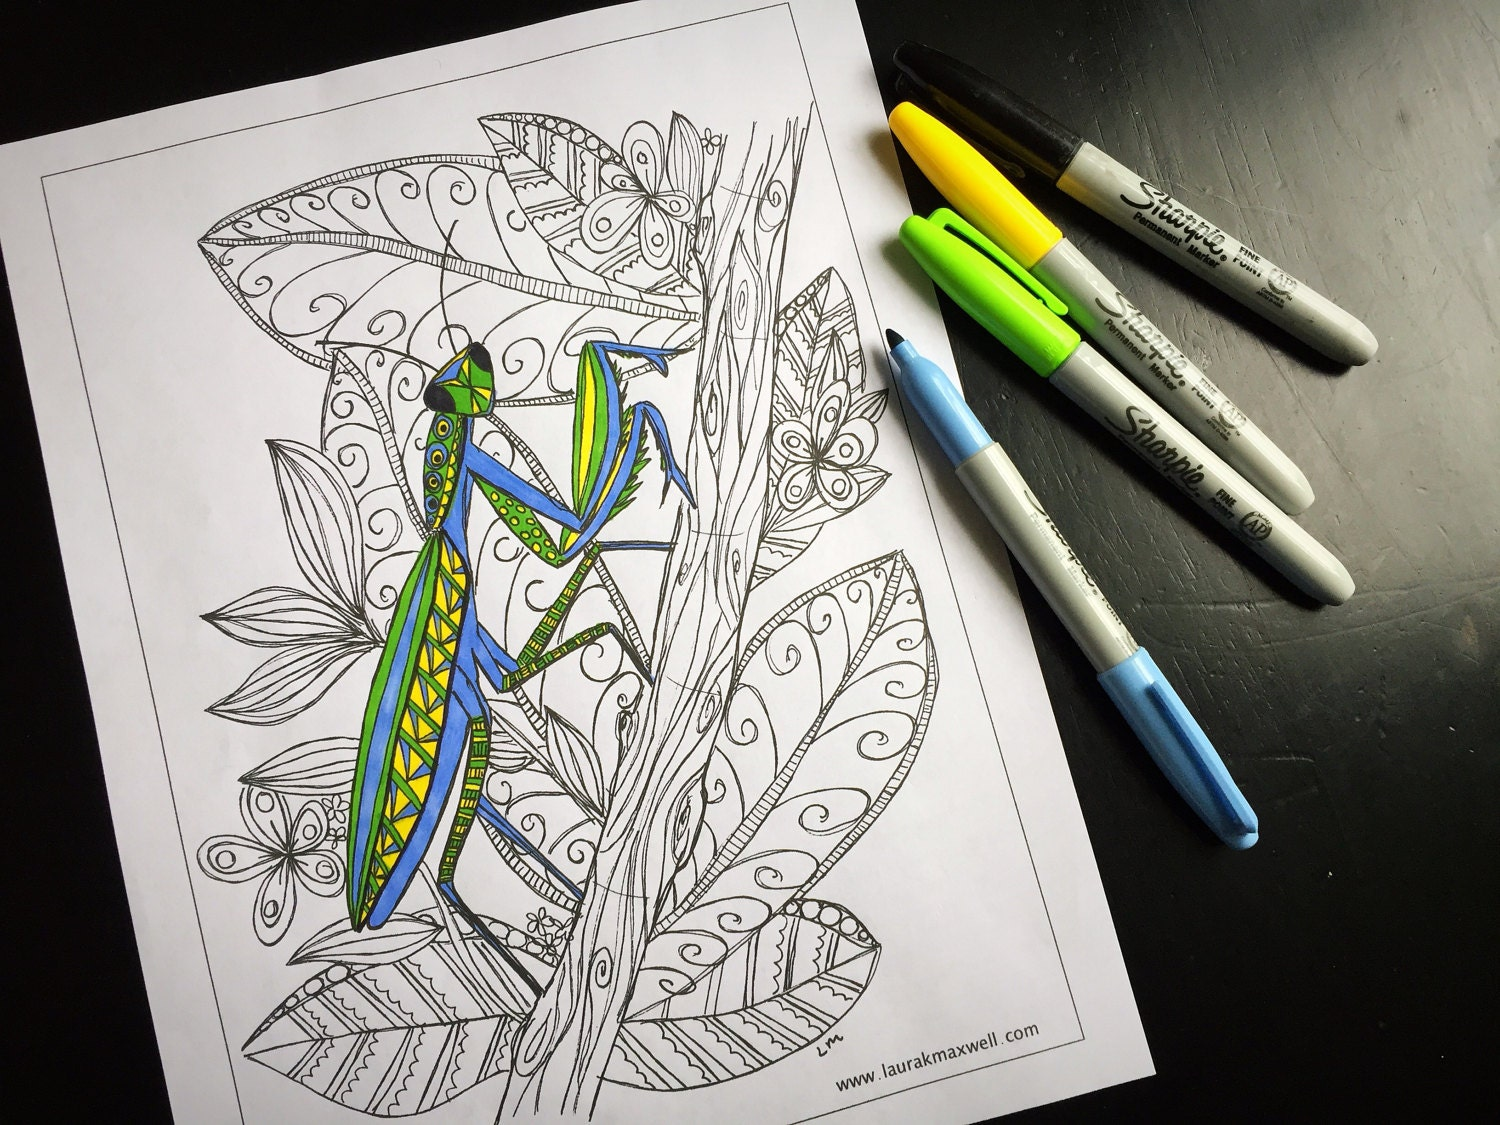 praying mantis coloring sheet for adults and kids instant